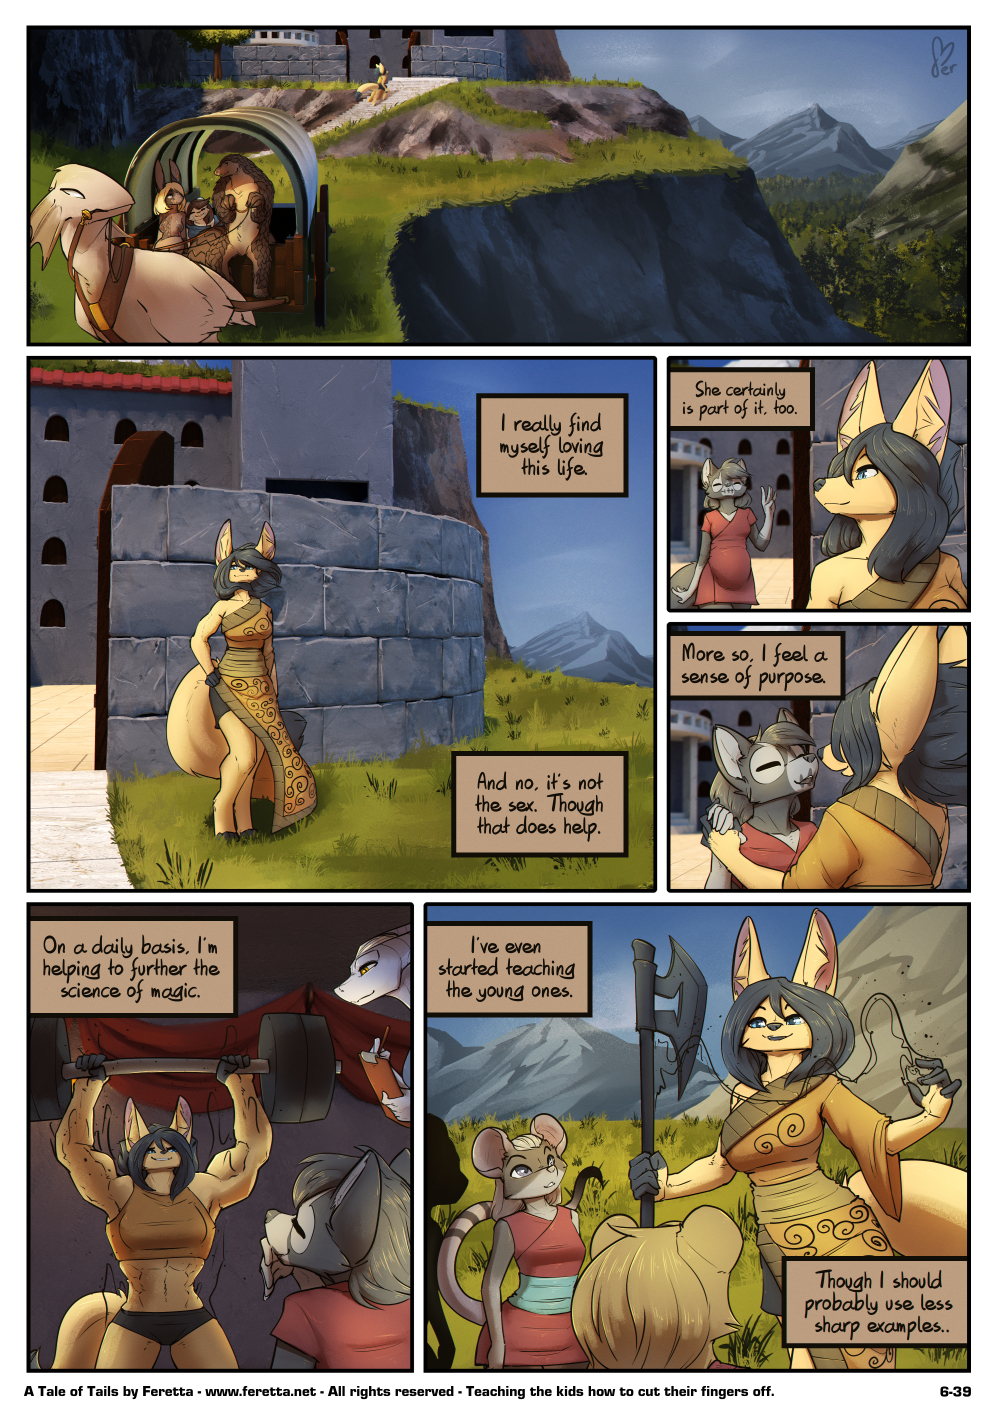 A Tale of Tails, 6-39